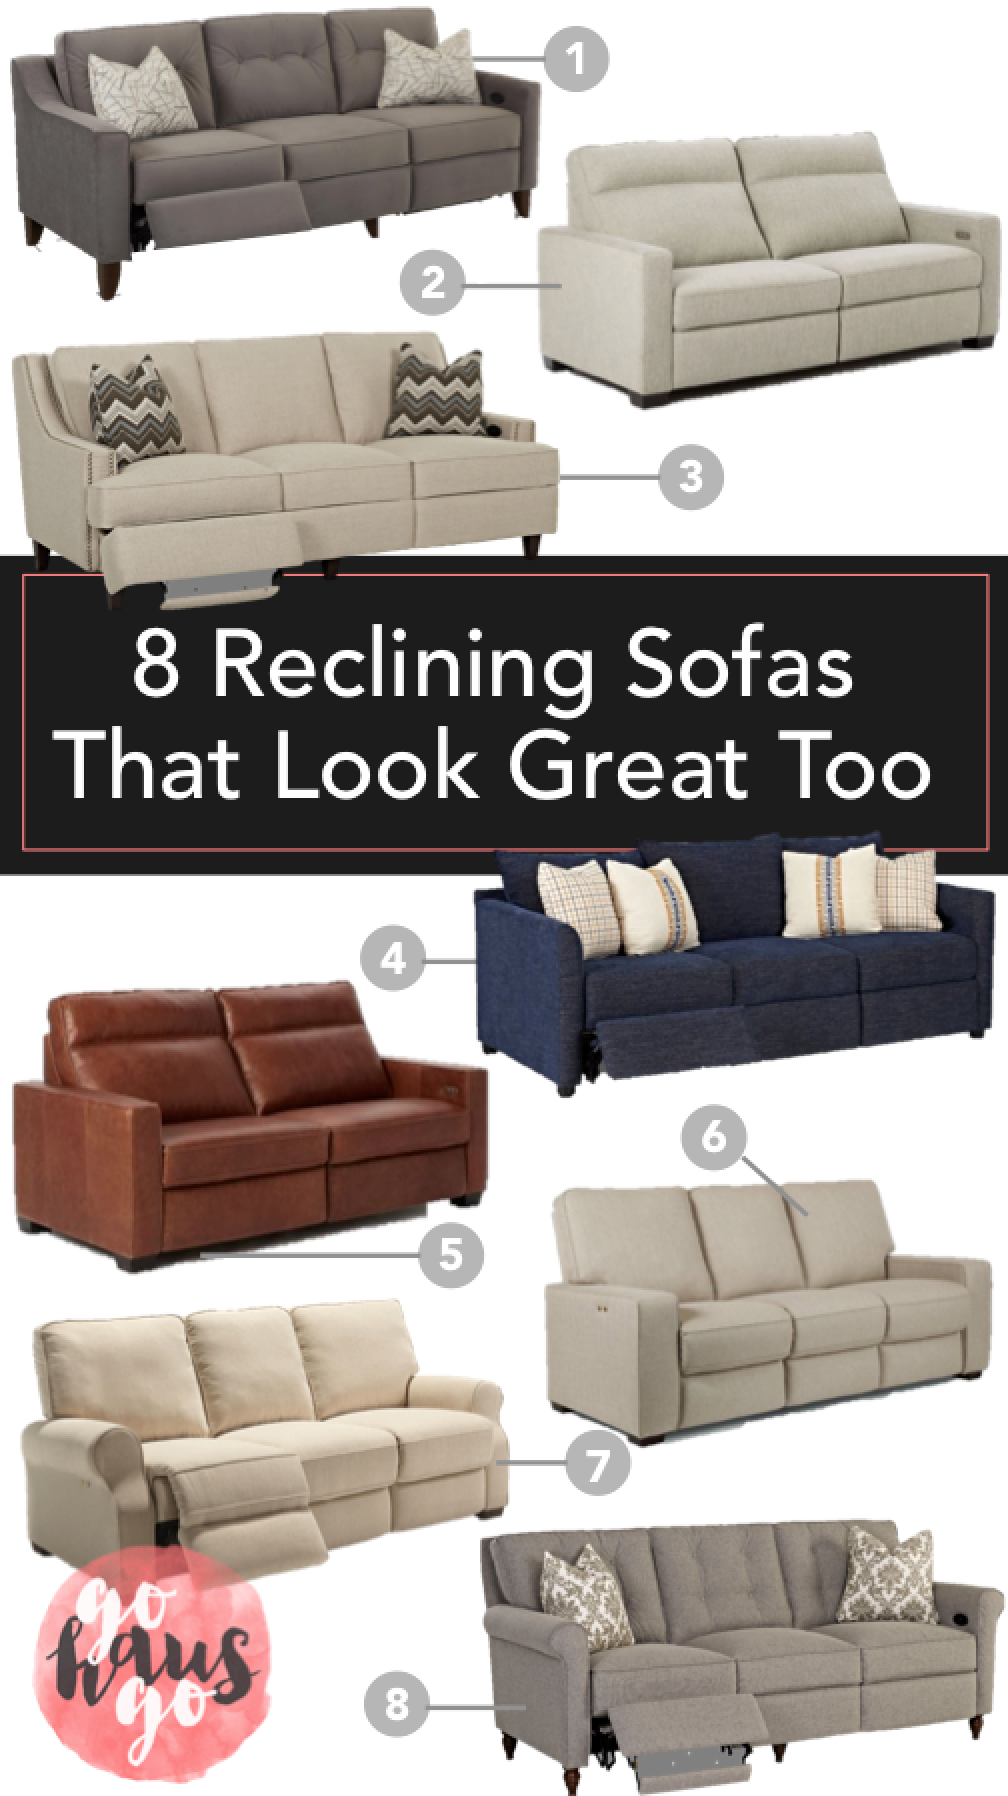 8 Reclining Sofas That Look Great Too